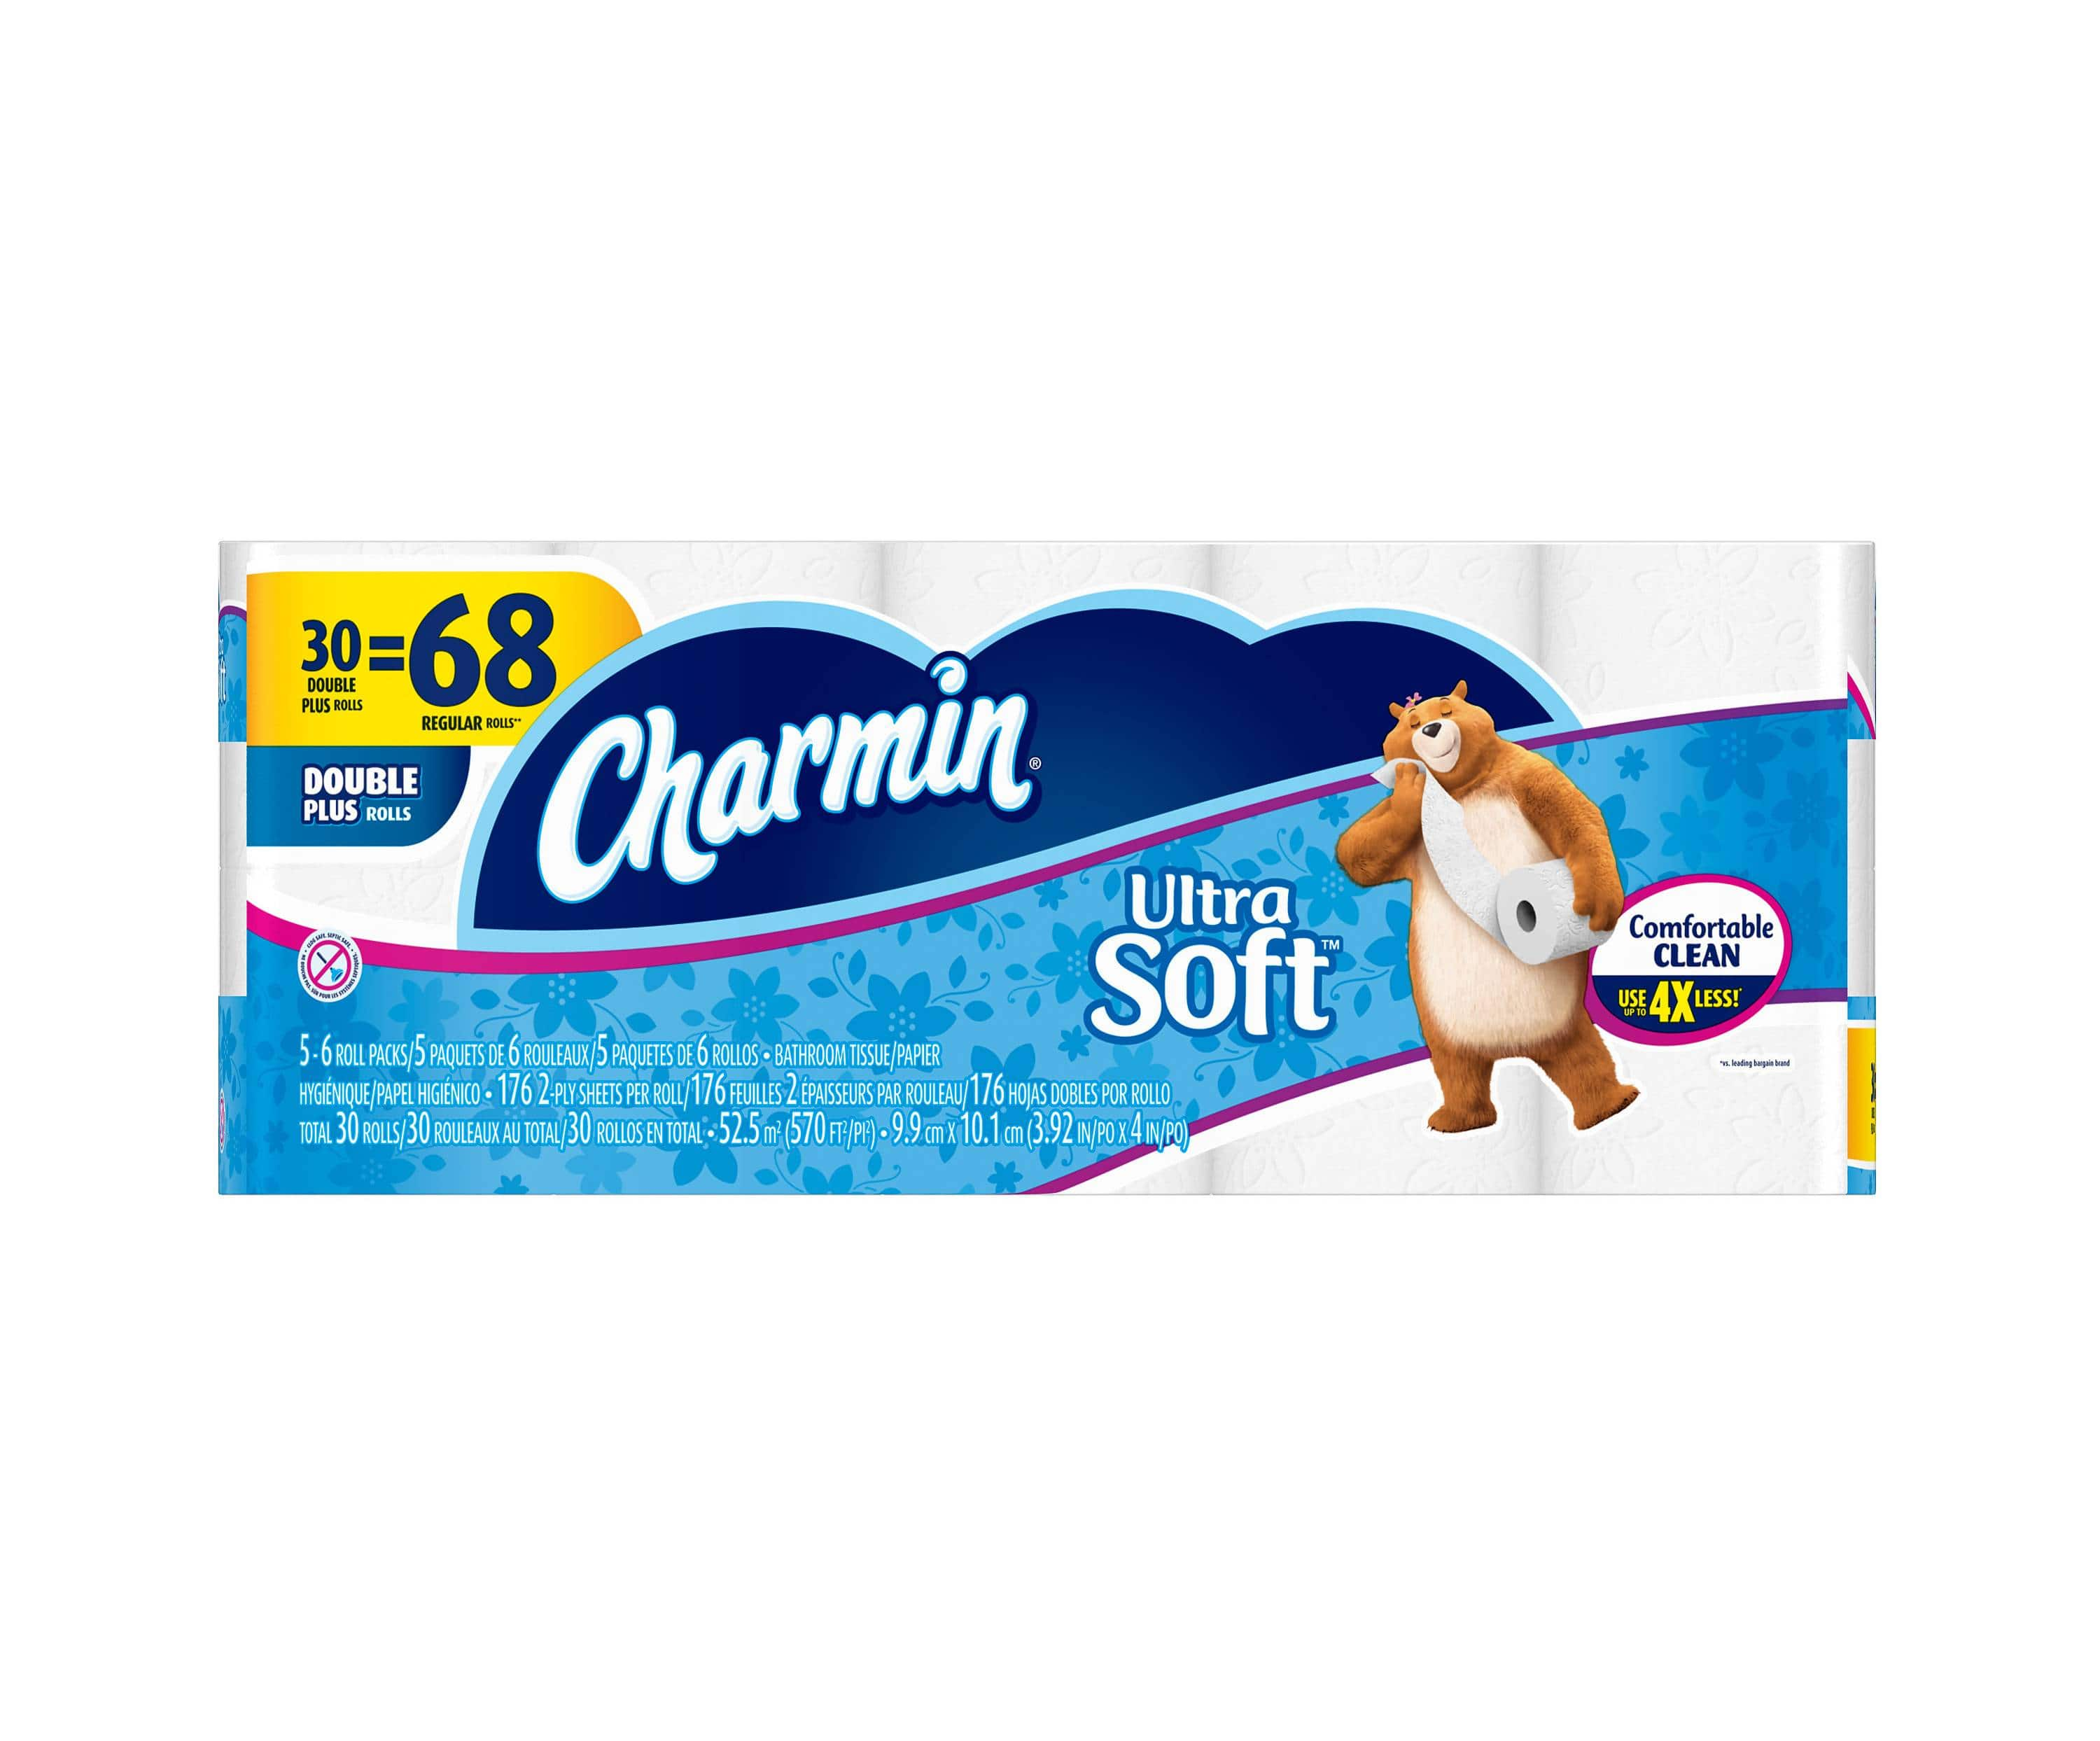 90 Ct Charmin Ultra Soft Double Plus Roll Toilet Paper 10